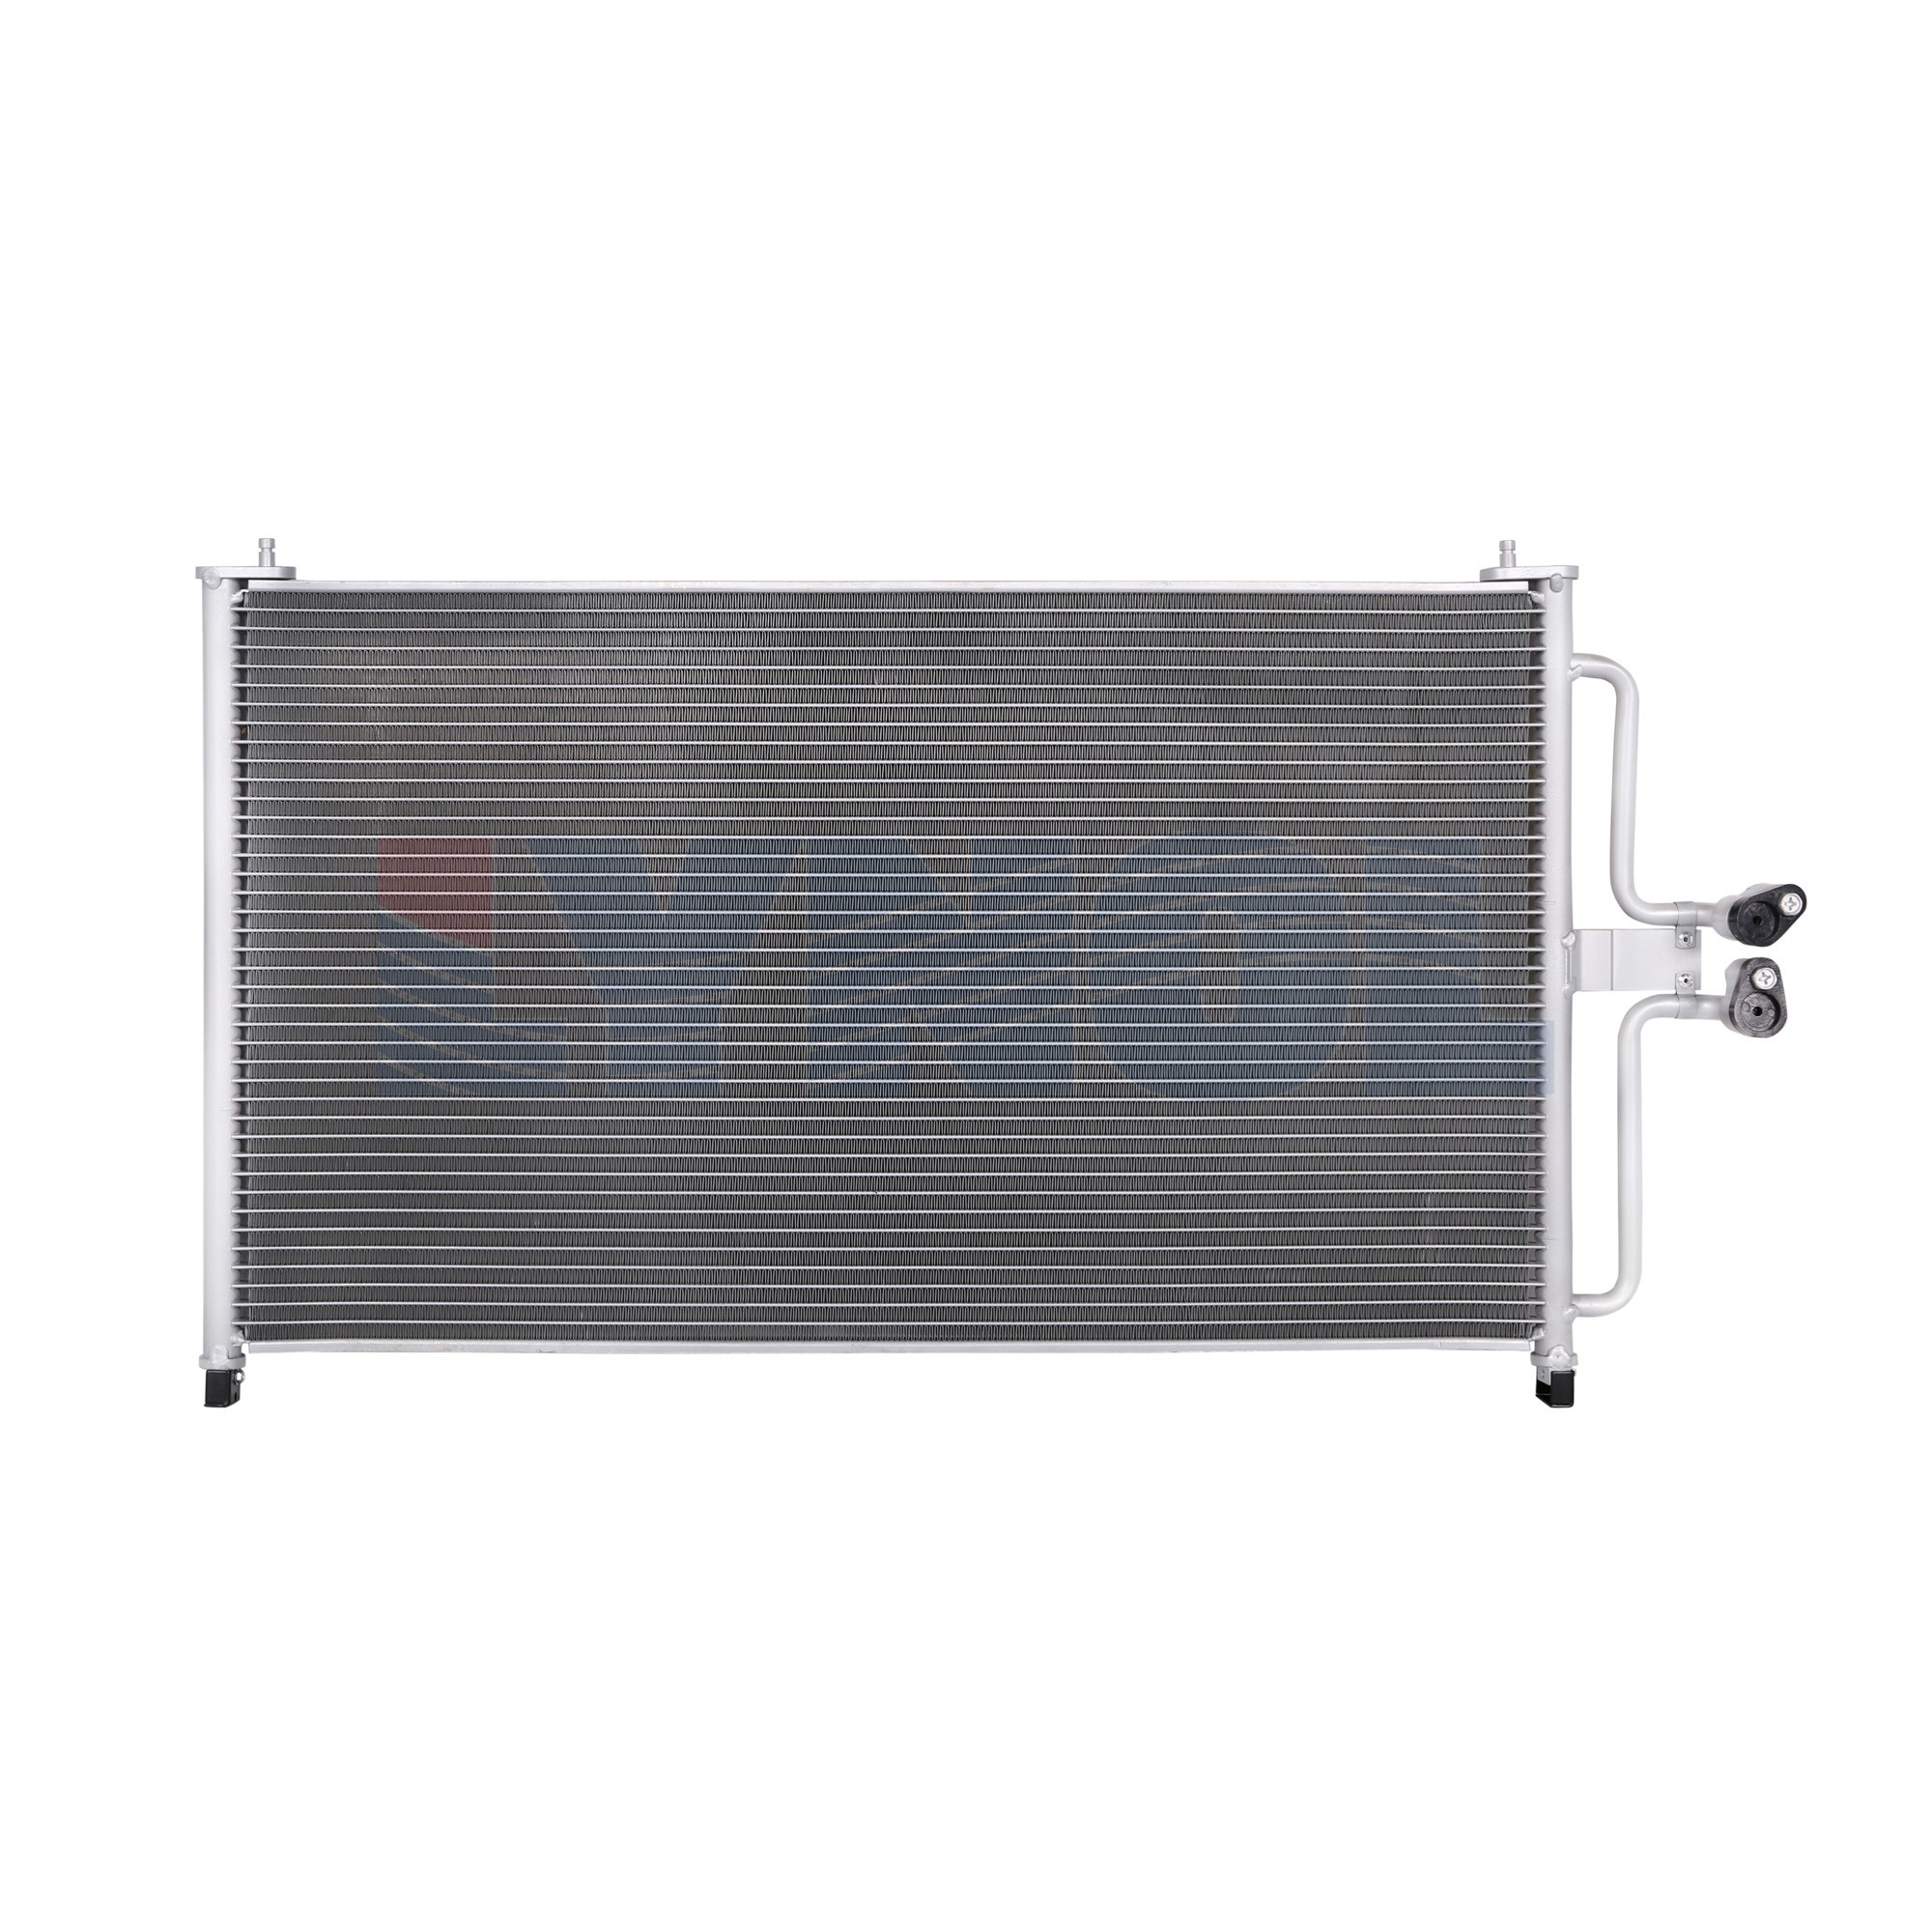 AC3298 - AC Condensers  - 05-07 Ford Escape, Mercury Mariner